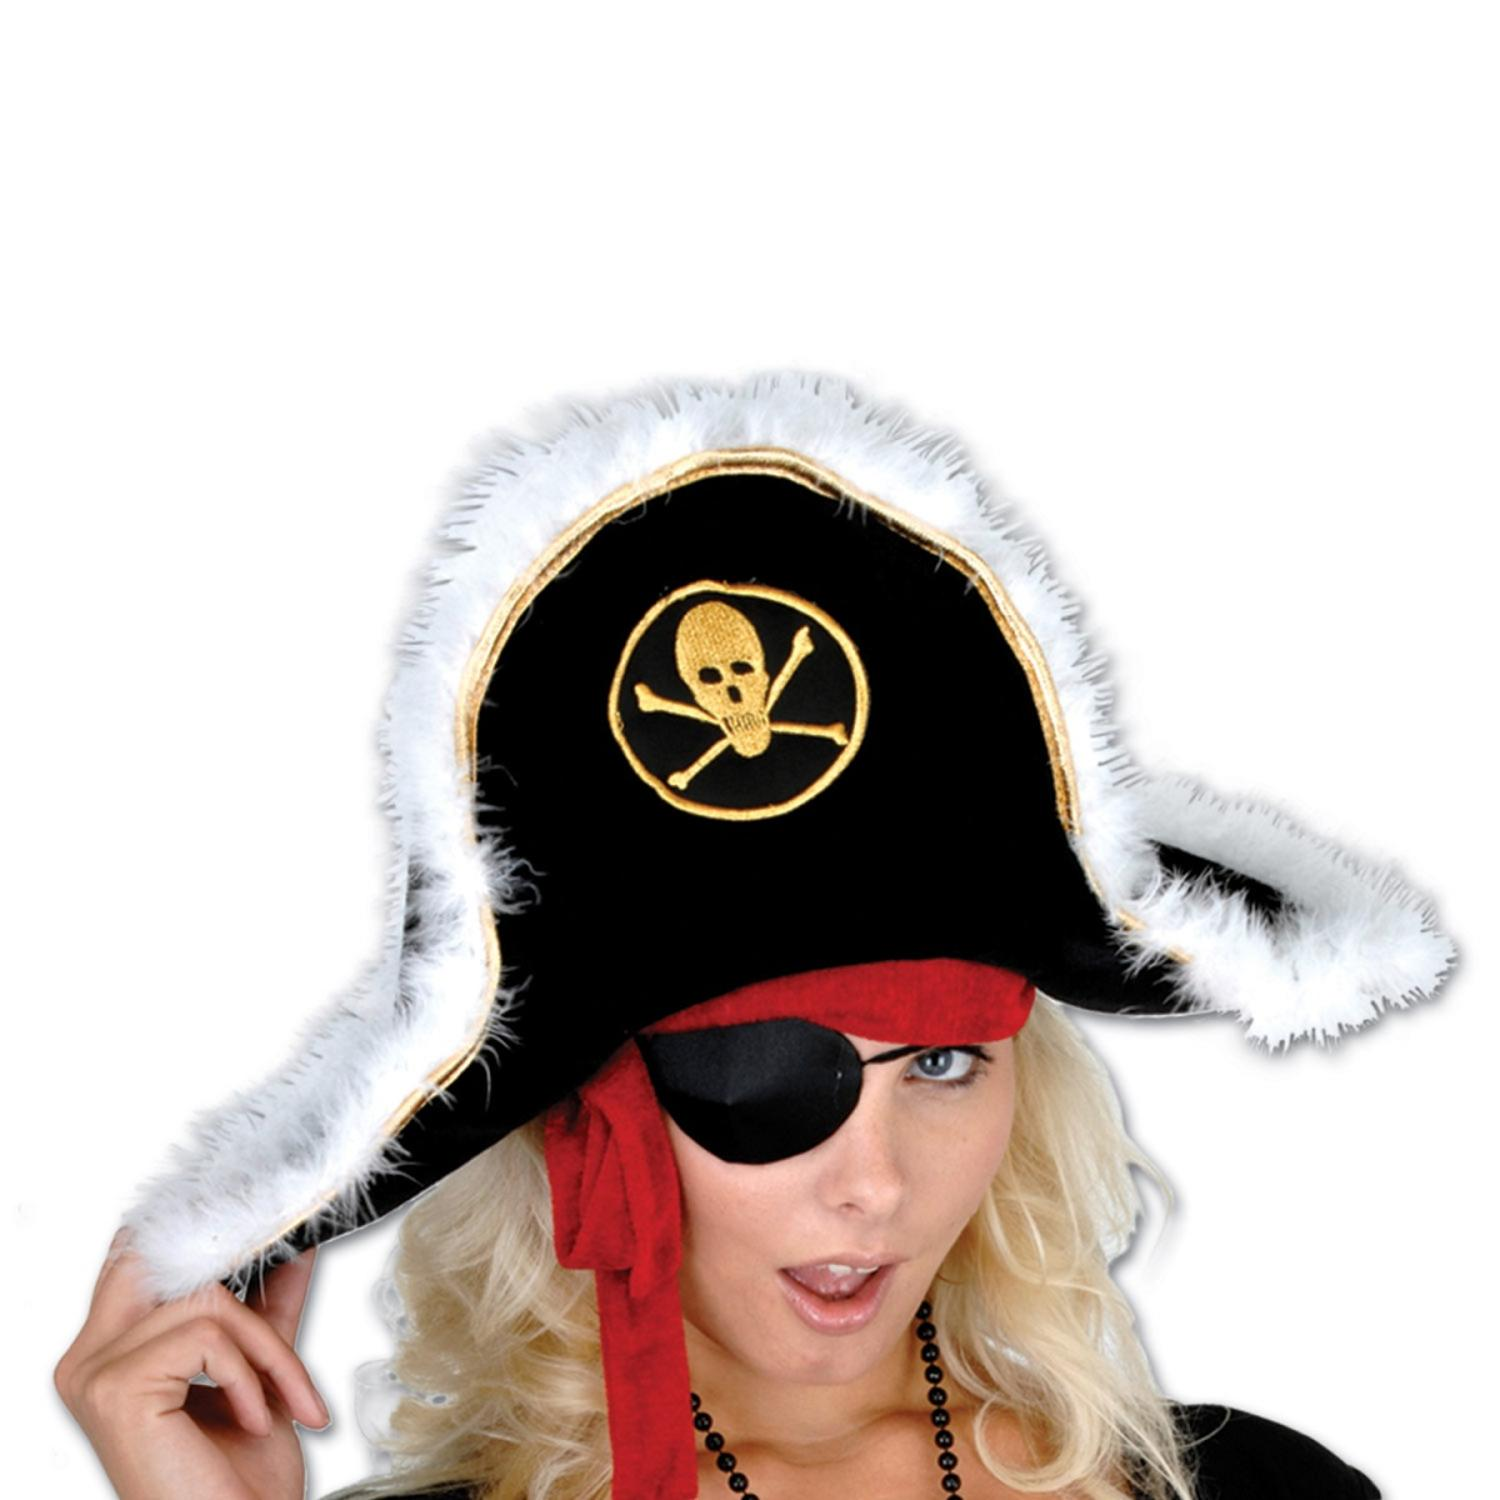 Pack of 6 Black White and Gold Plush Pirate Captain's Party Hat - Adult